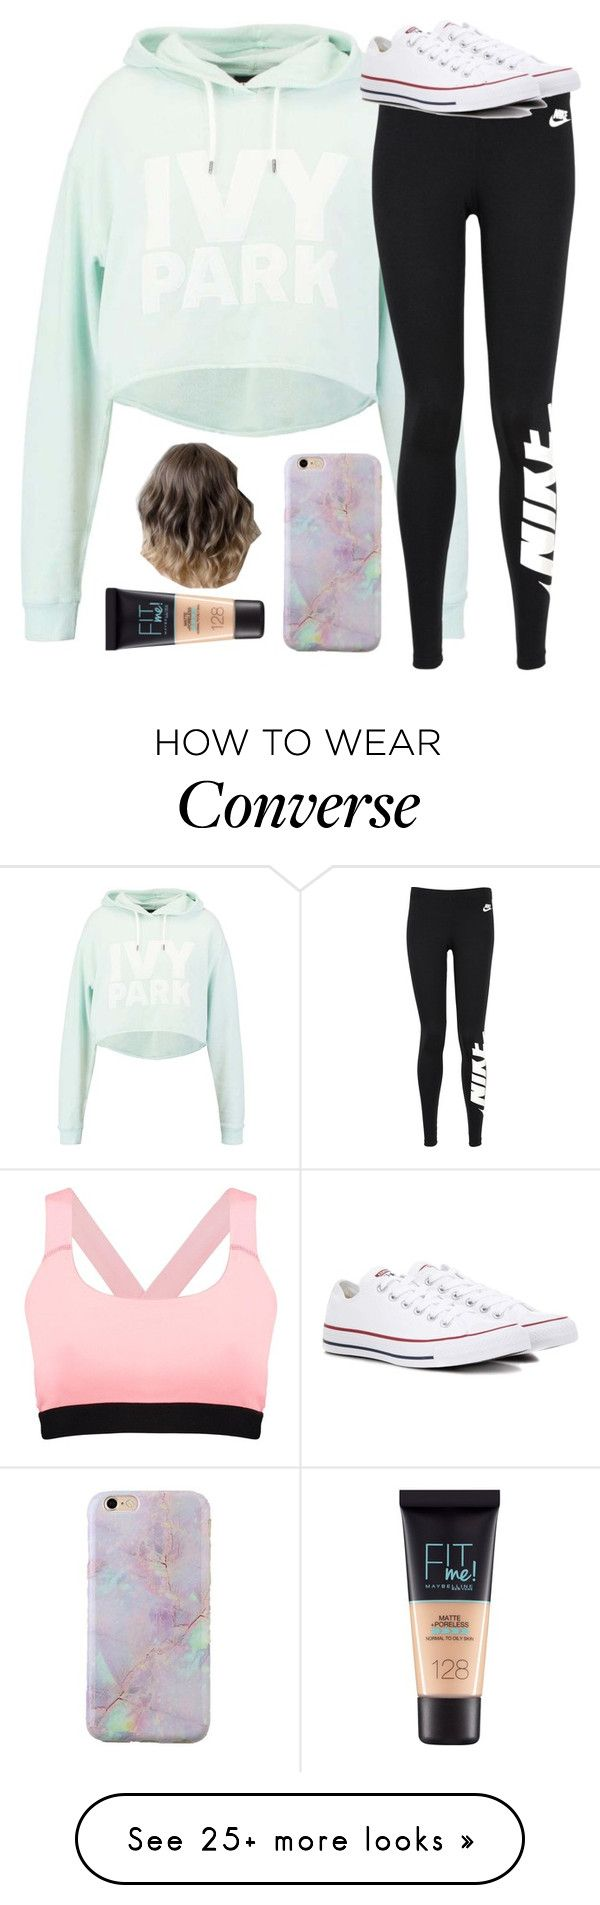 """Untitled #2765"" by laurenatria11 on Polyvore featuring Boohoo, Ivy Park, NIKE, Converse and Maybelline"